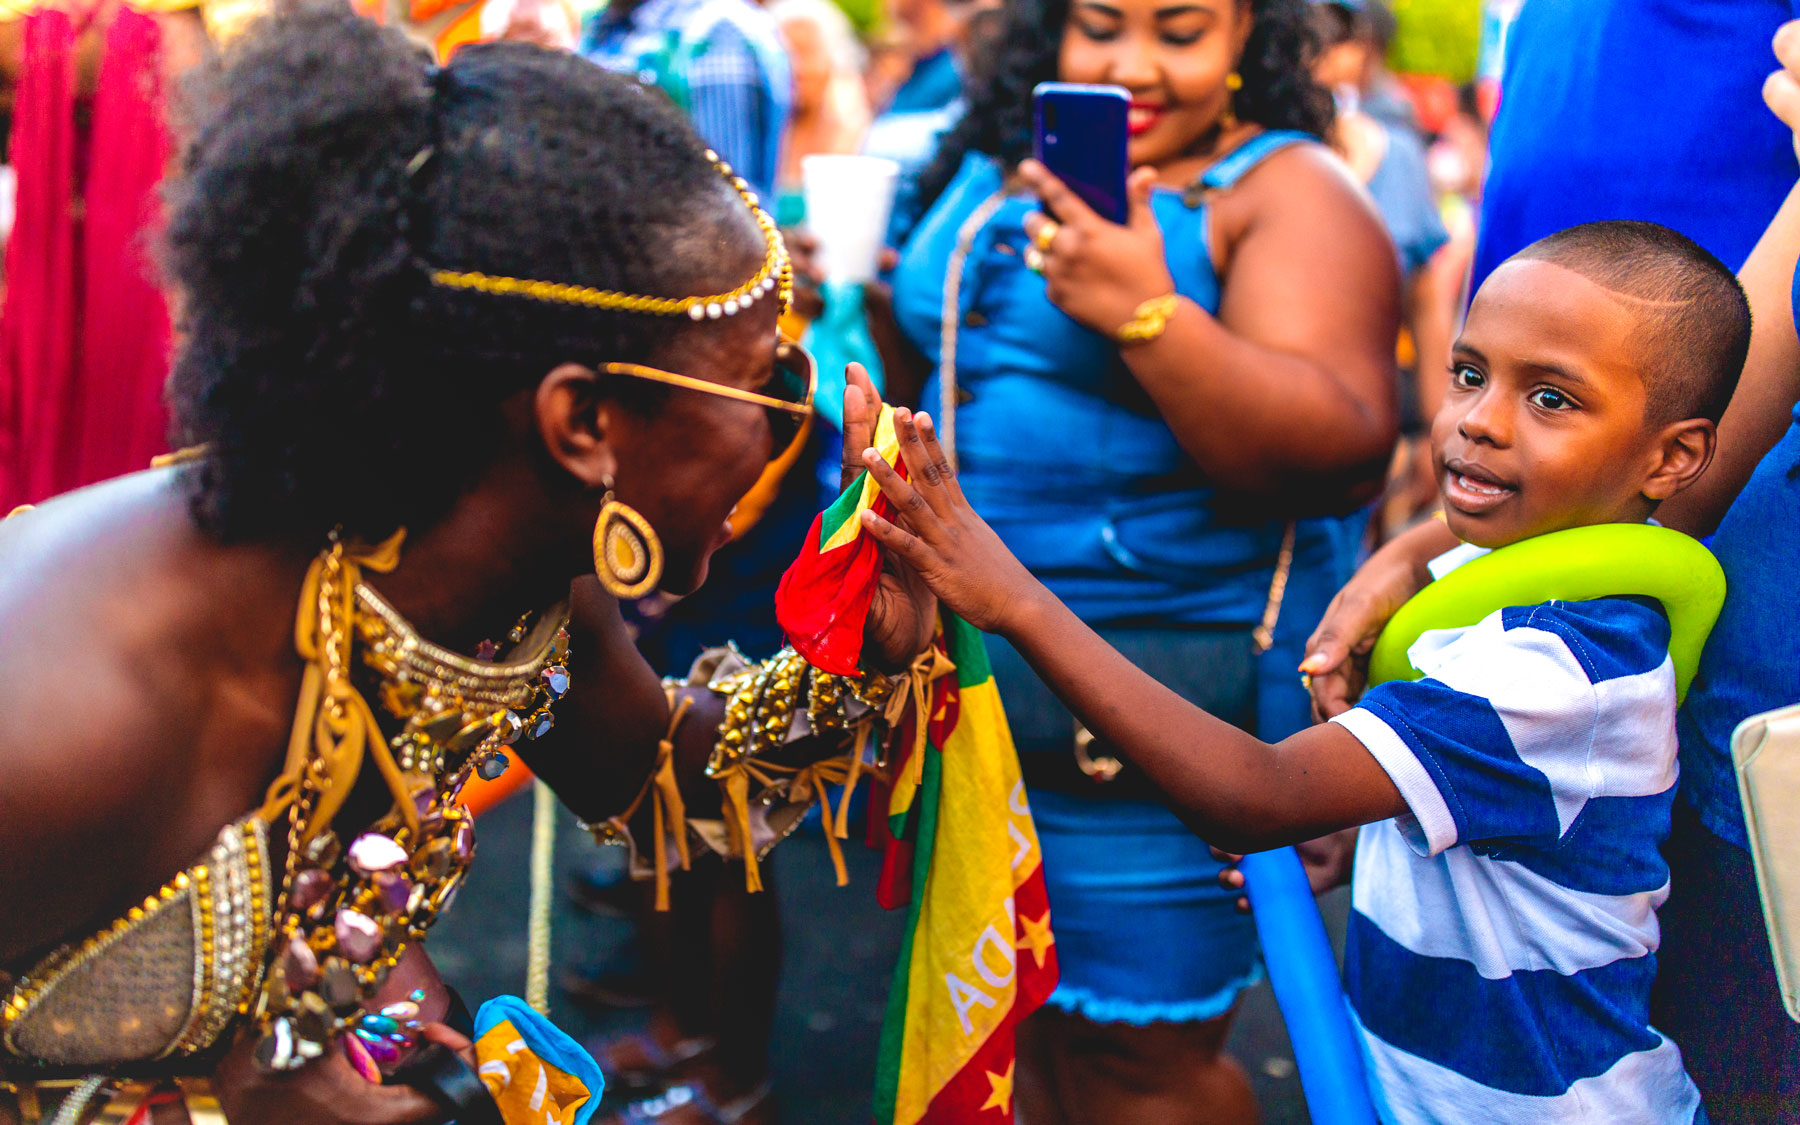 Woman giving high five to boy during Carnival